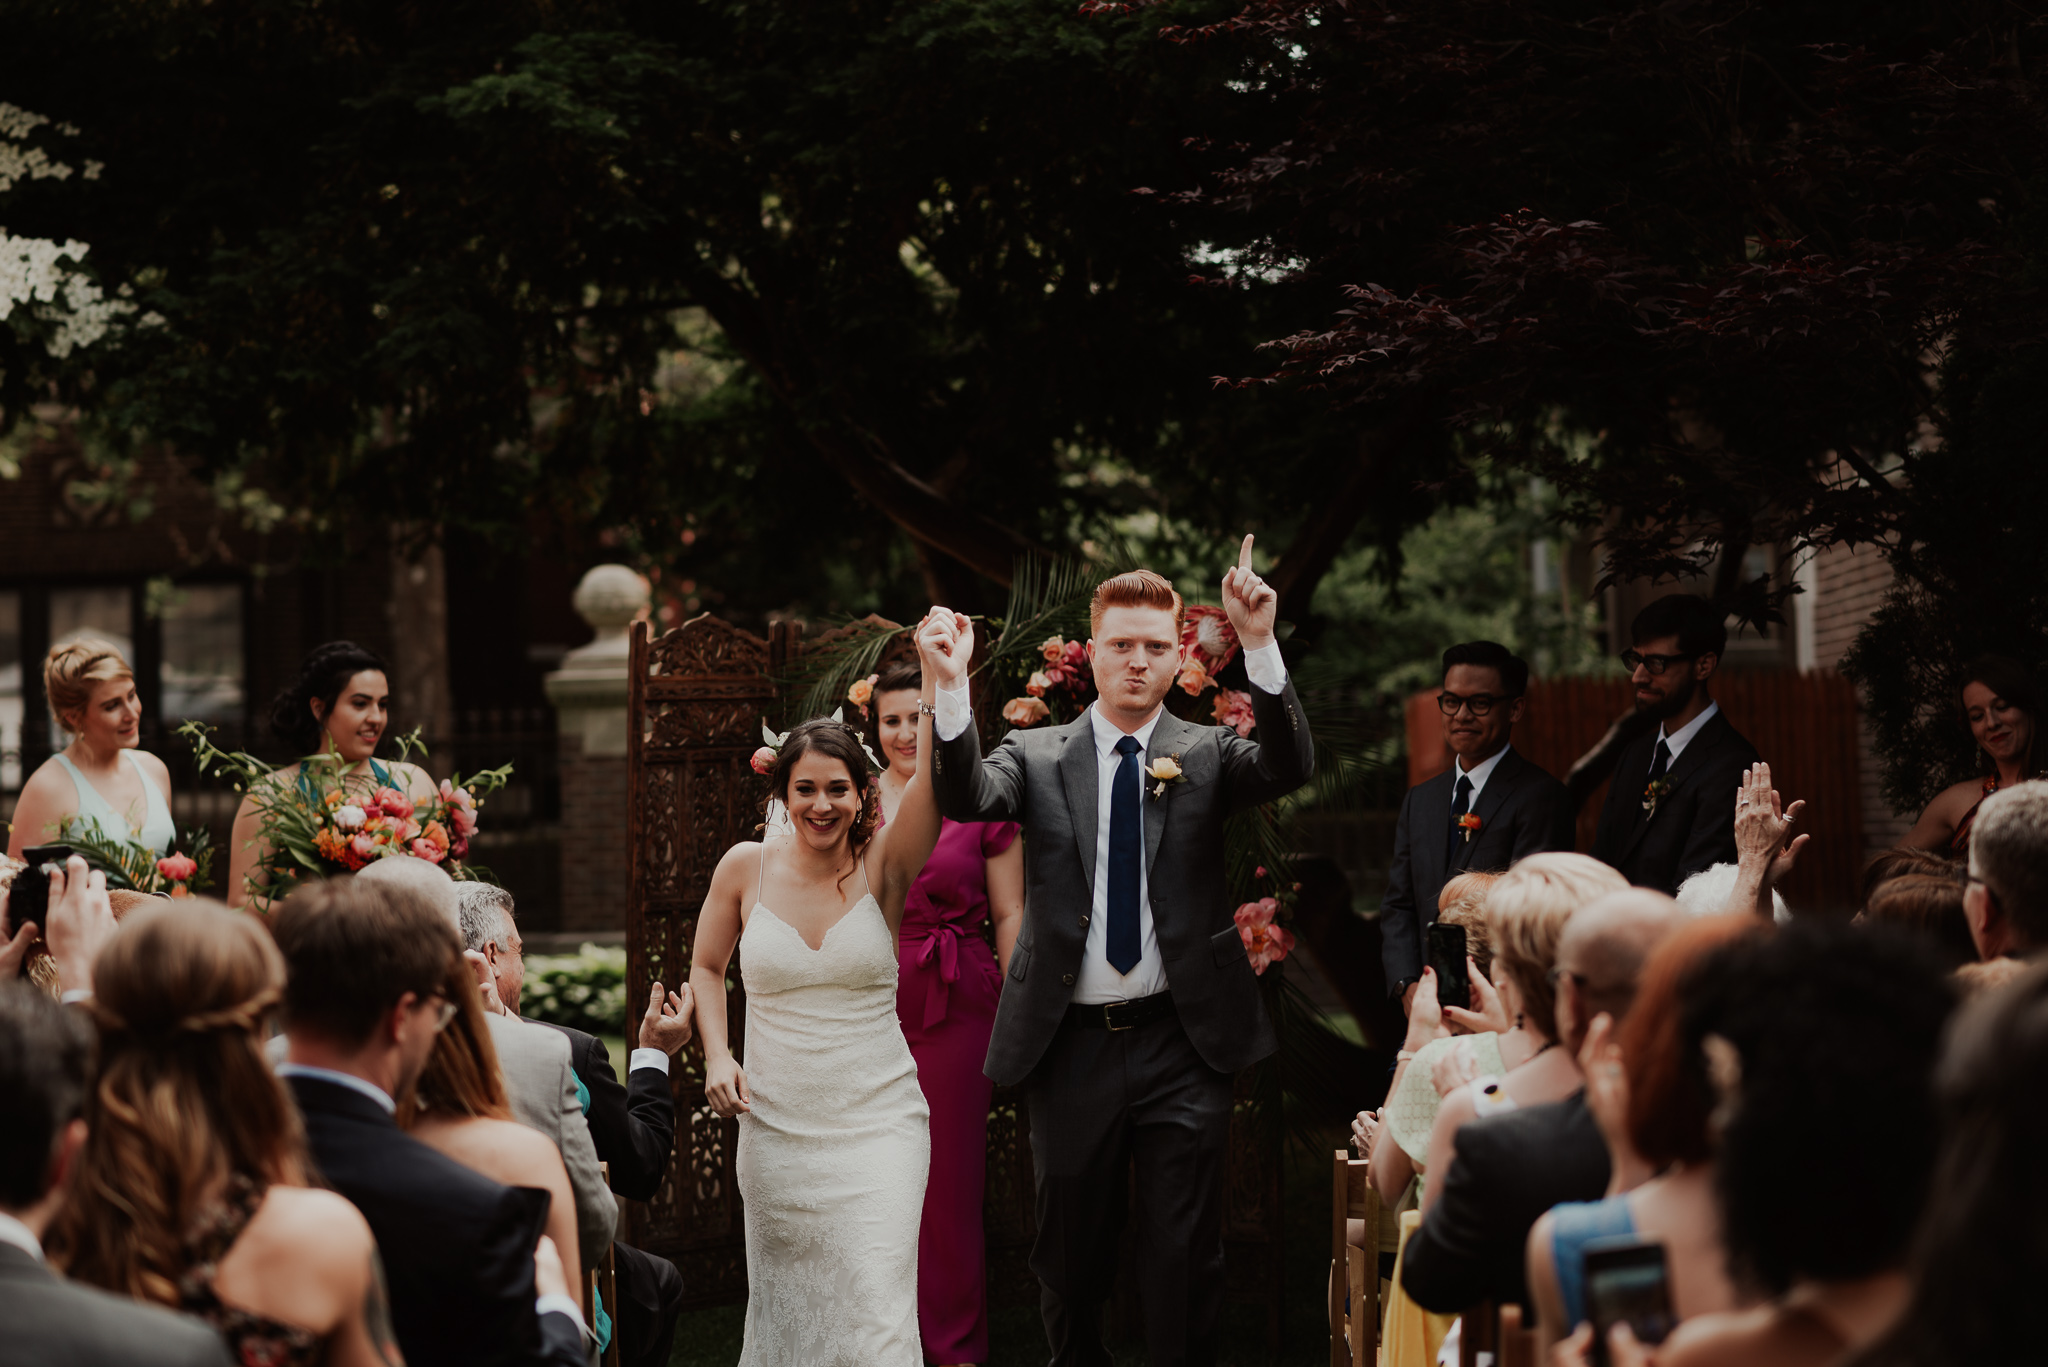 wildsoulsstudio-brooklyn-society-wedding-33.jpg